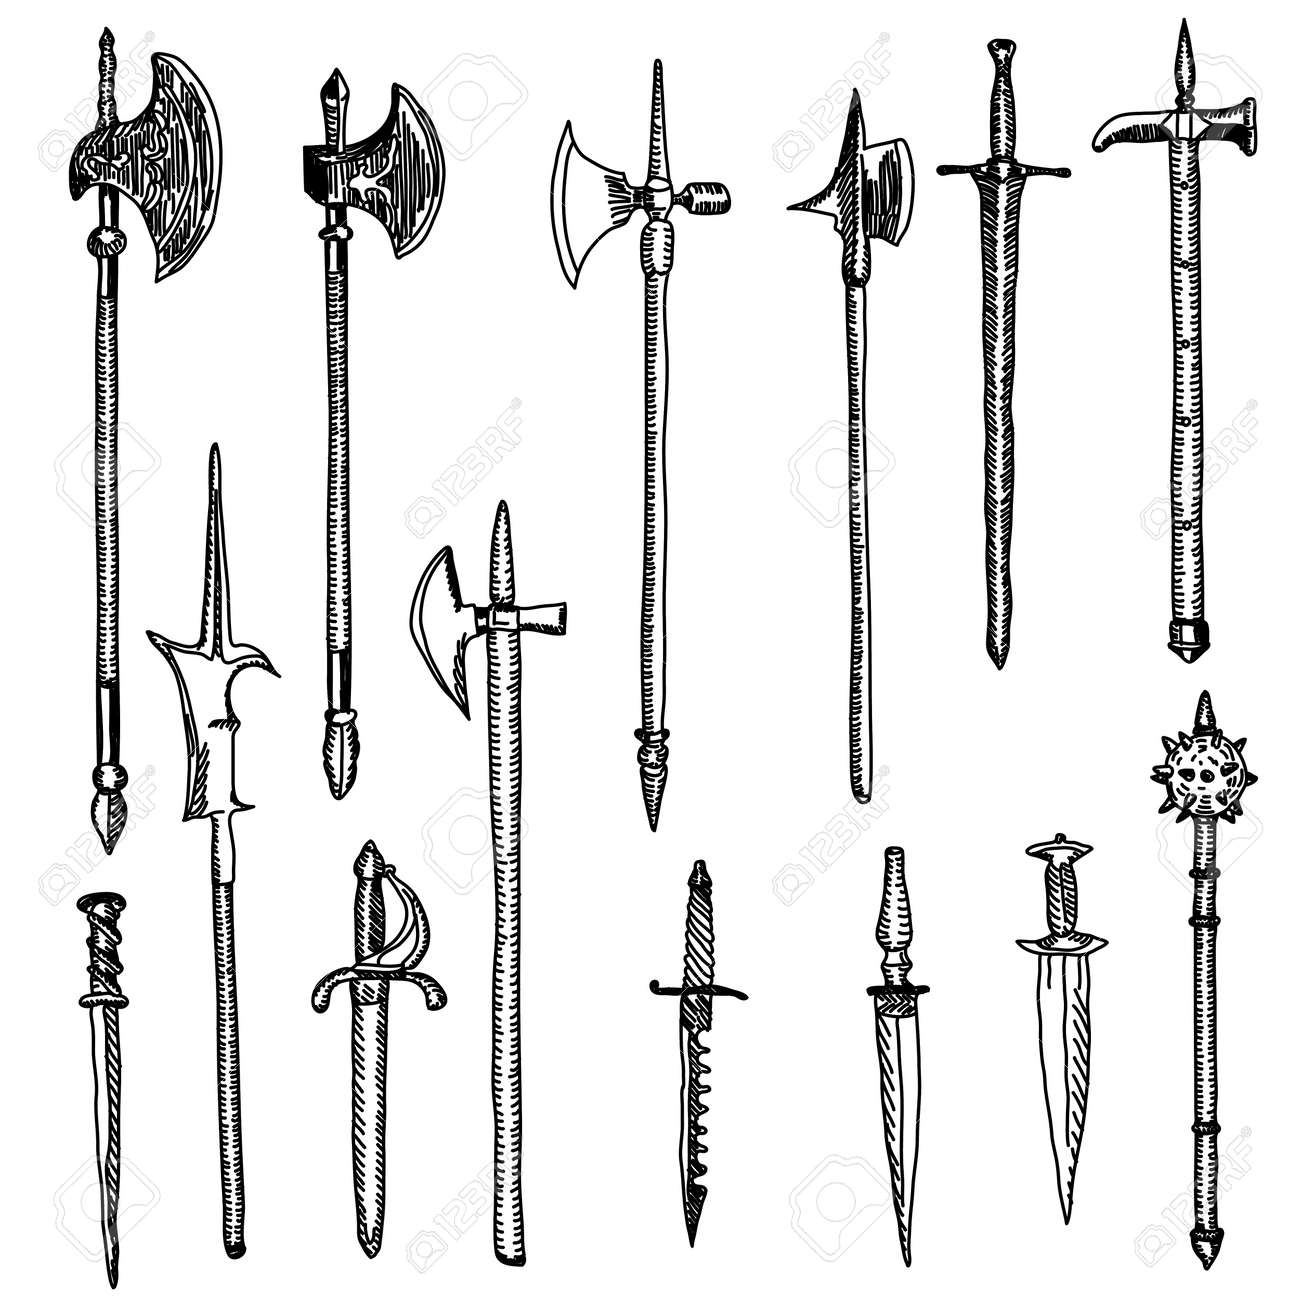 Weapon collection, medieval weapons - 10850949